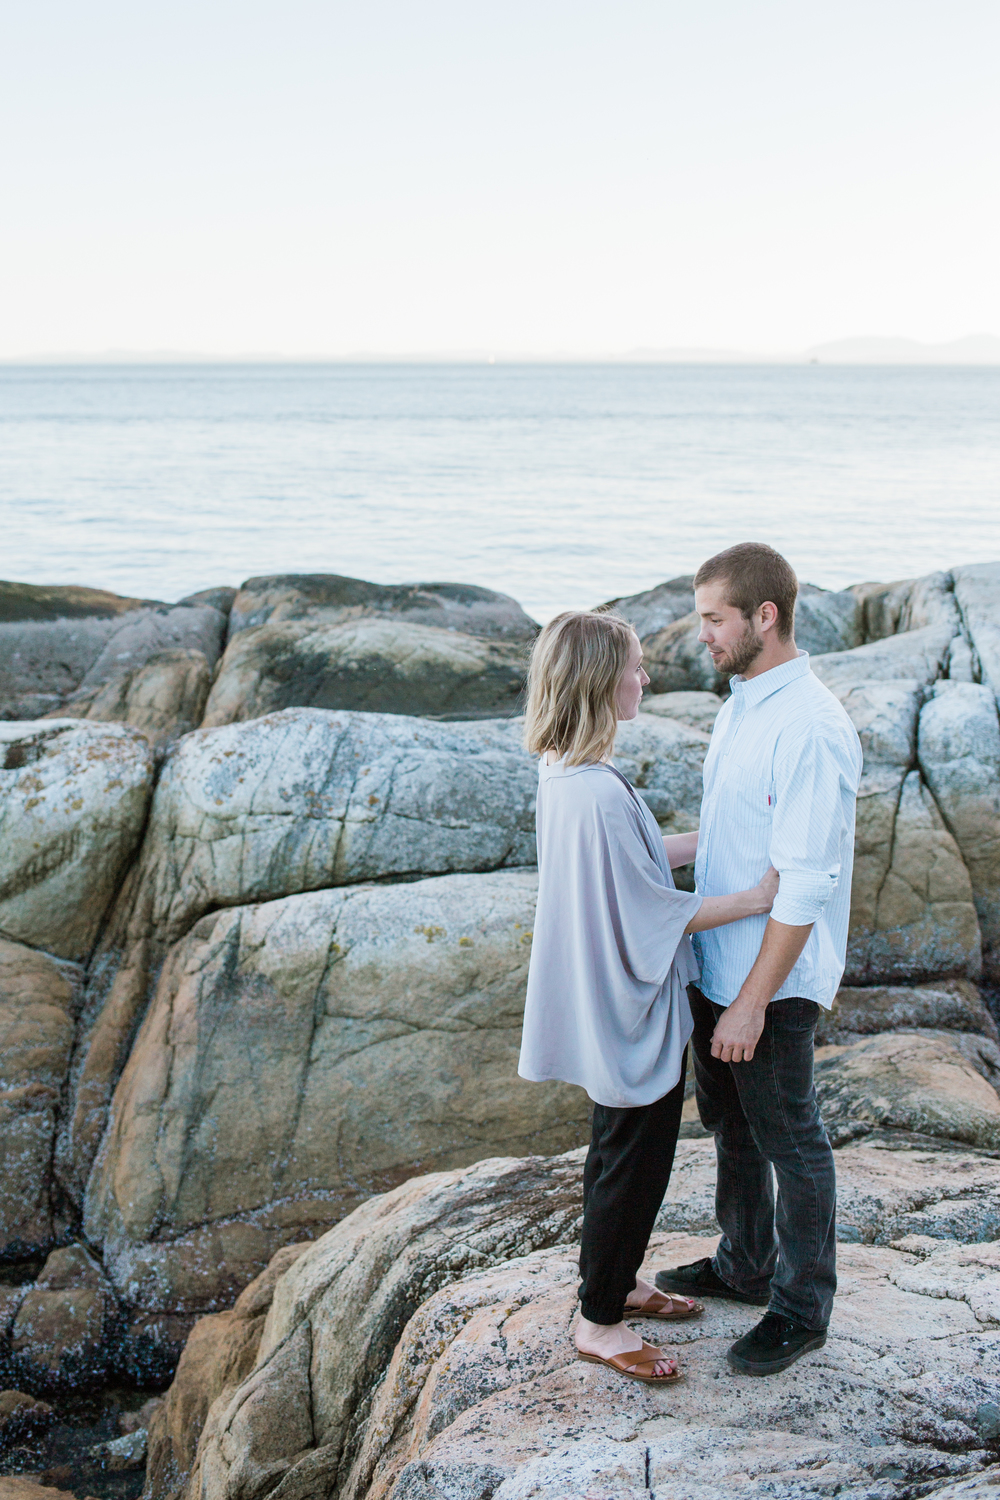 LightHousePark-Engagement-M&J-MintPhotography-34.jpg